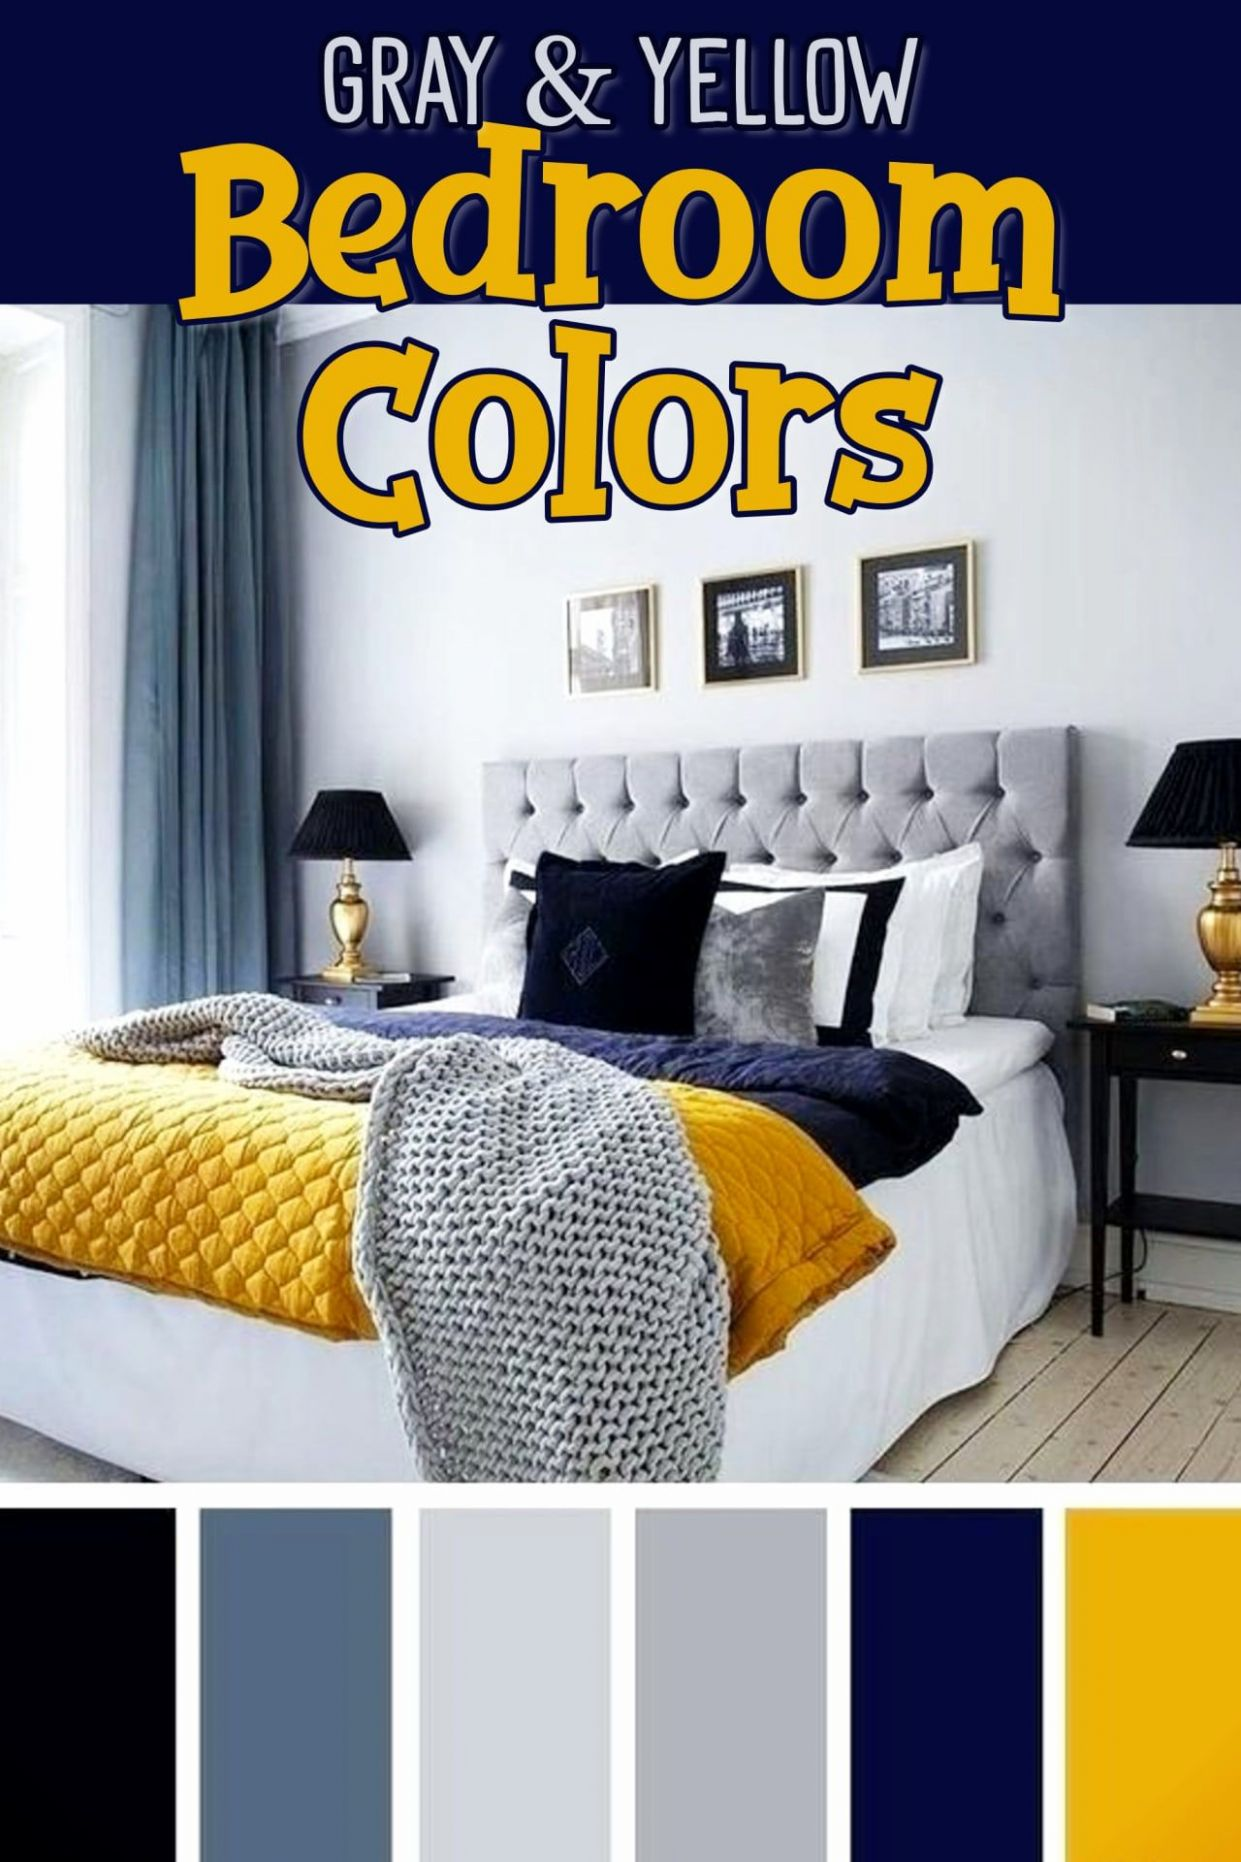 Gray and Yellow Bedroom Ideas -Yellow and Grey Bedding, Accent ...